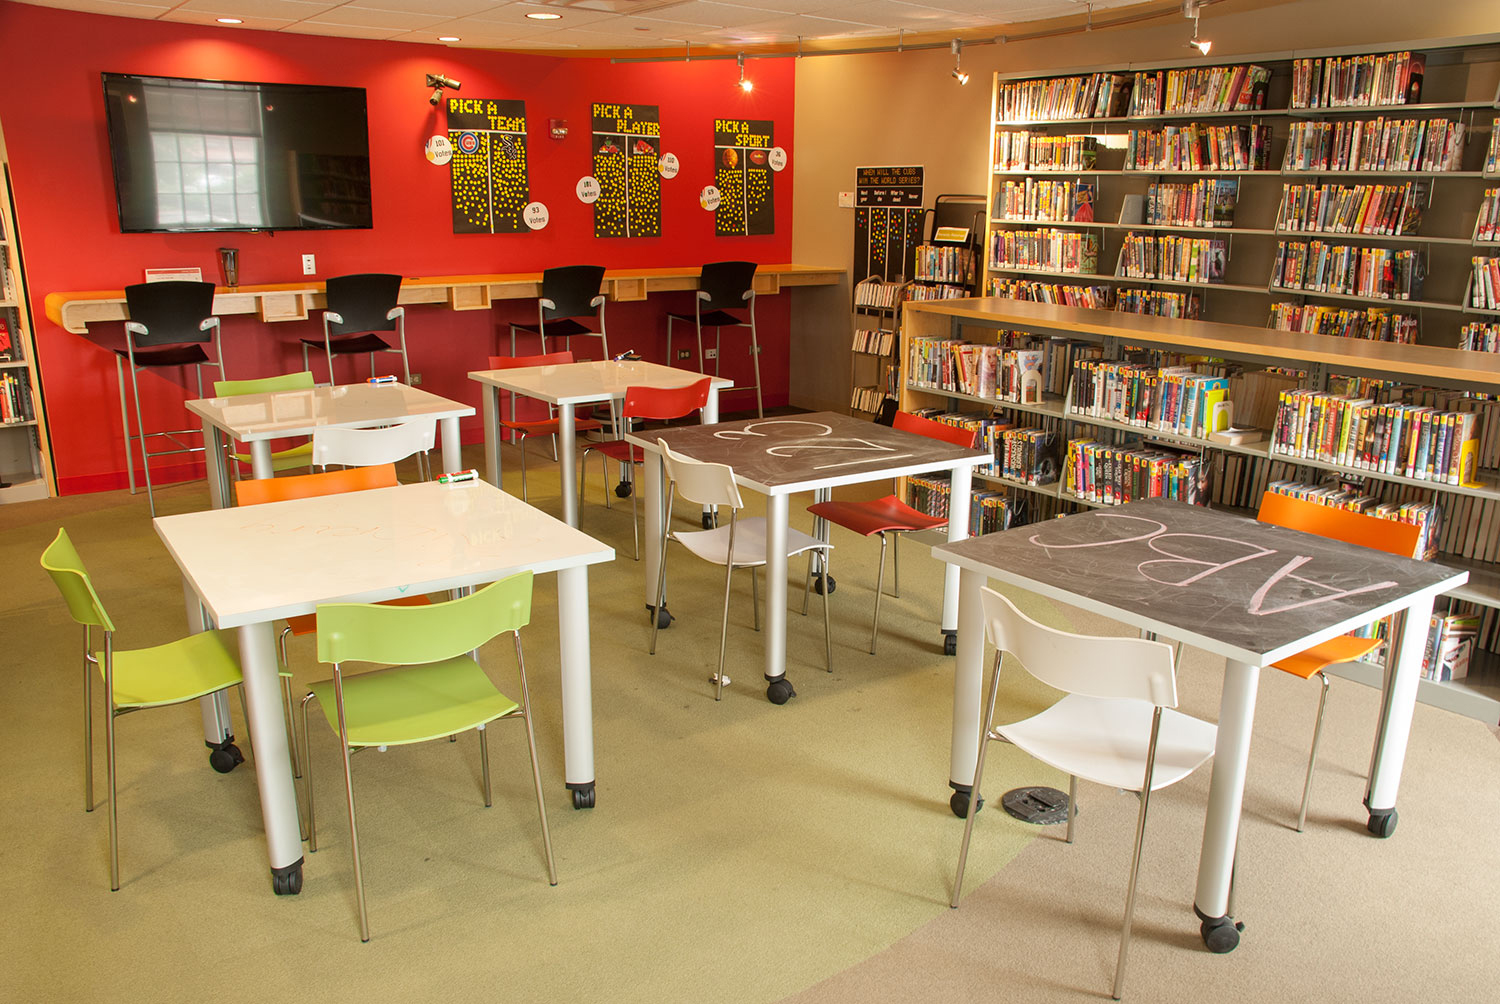 Vox Meeting tables at Hinsdale Public Library